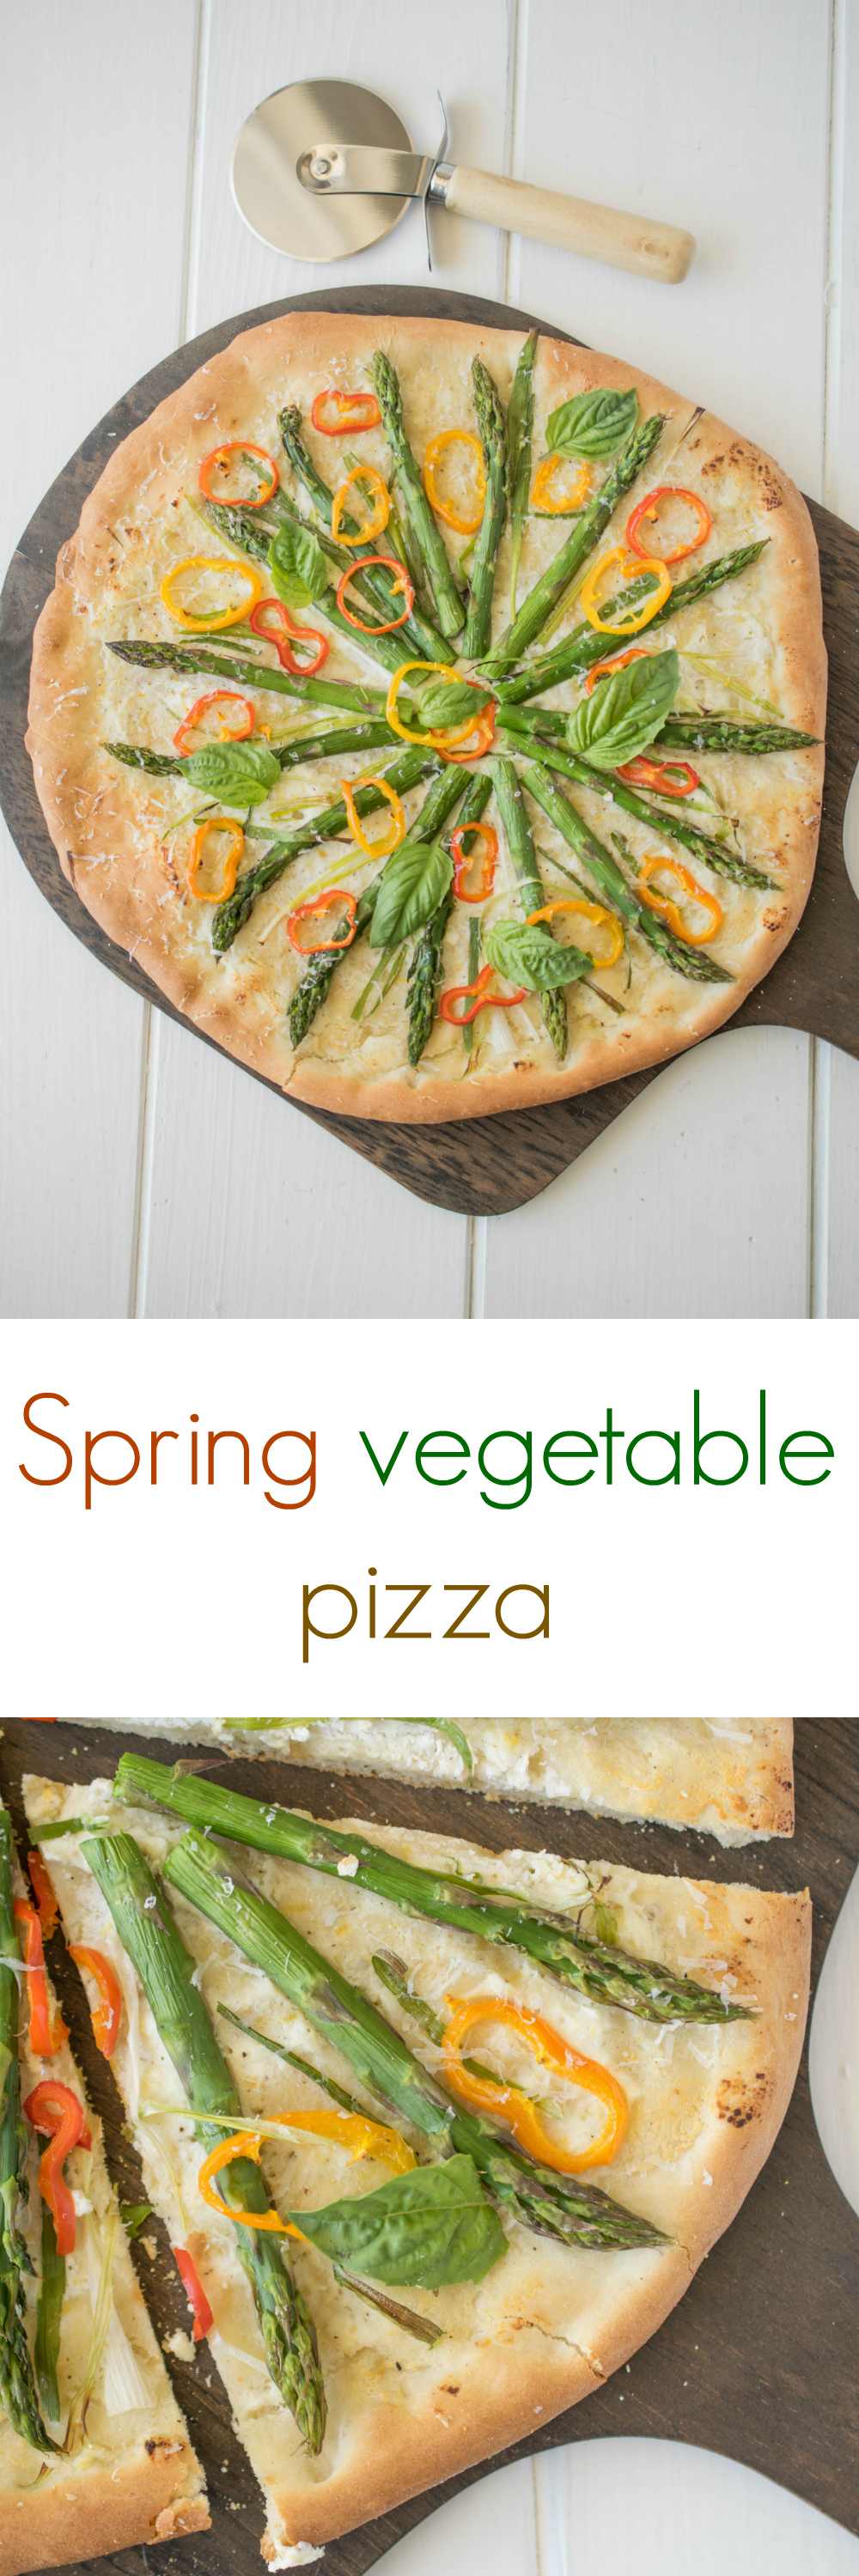 Spring vegetable pizza has a lemon, basil ricotta, asparagus, spring onions and sweet peppers.